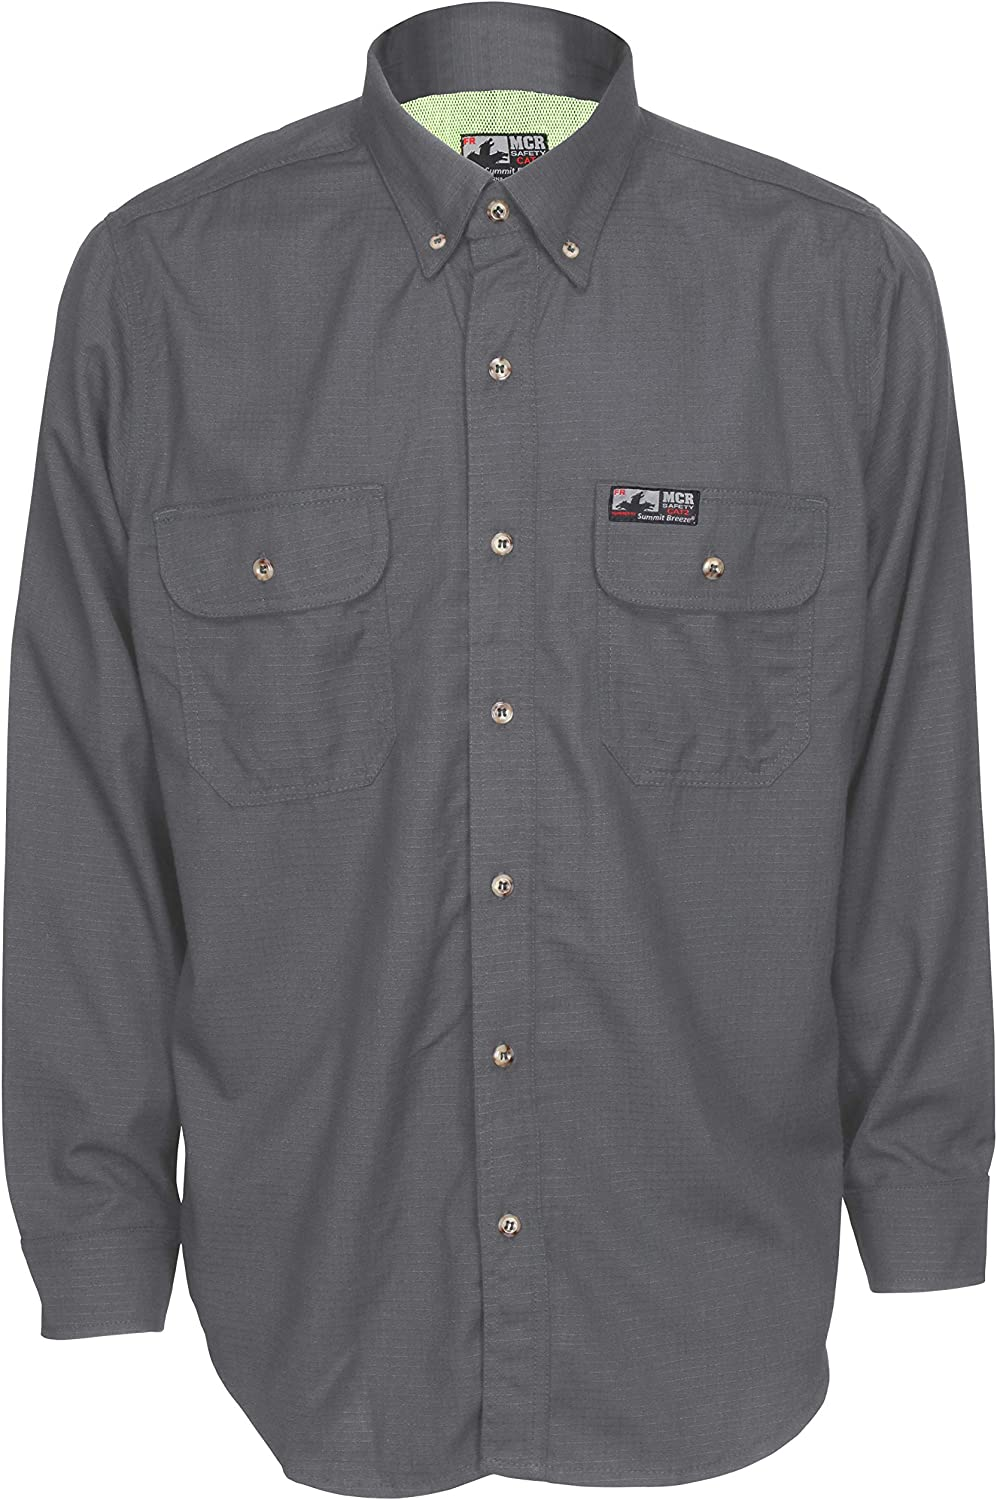 MCR powered by Summit Breeze Flame Resistant Vented Inherent Blend Shirt Grey 2 Extra Large Tall